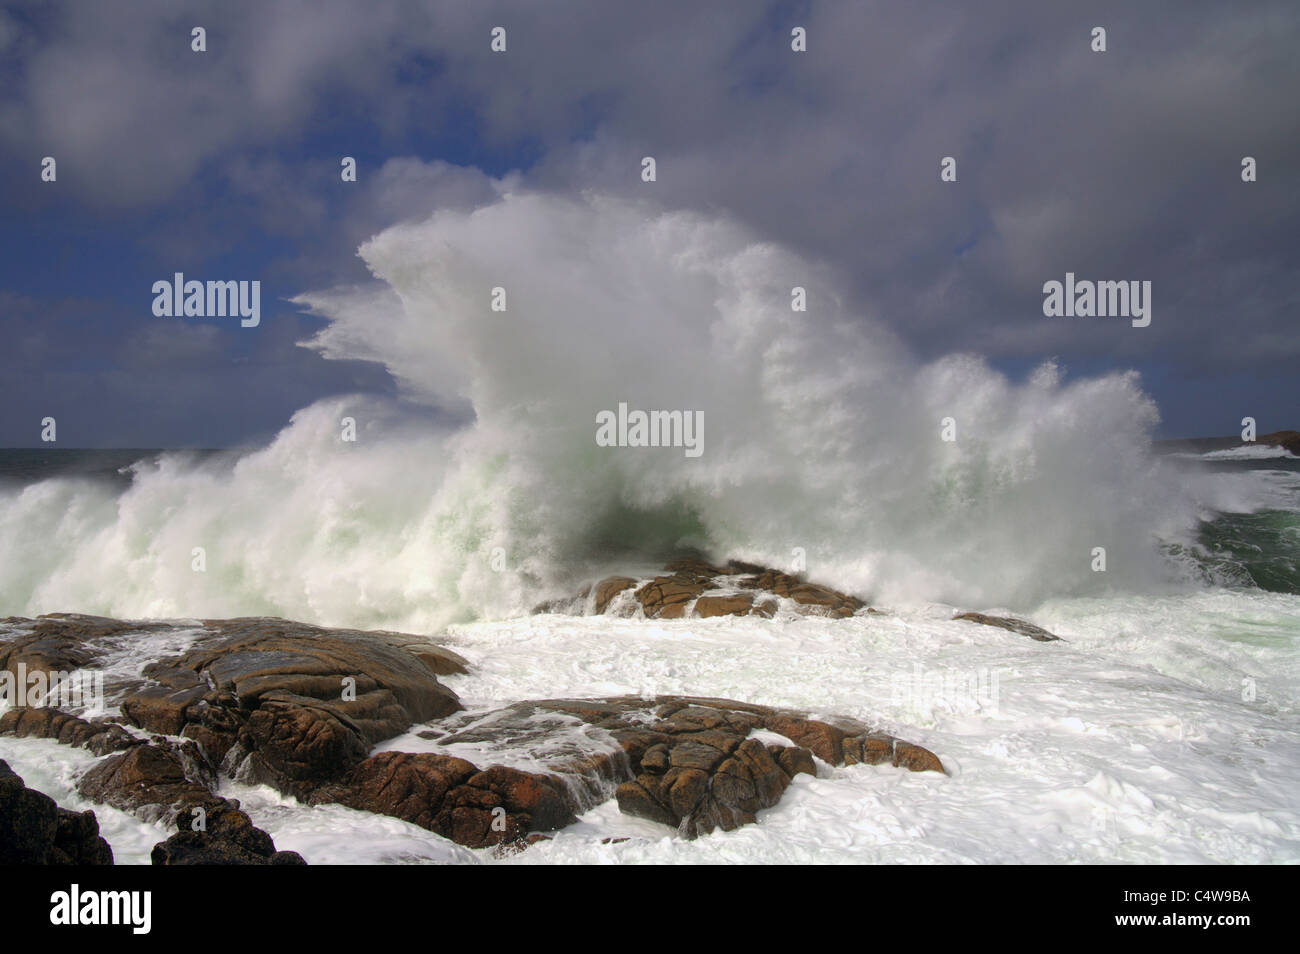 Waves crashing on the shore County Donegal, Southern Ireland - Stock Image